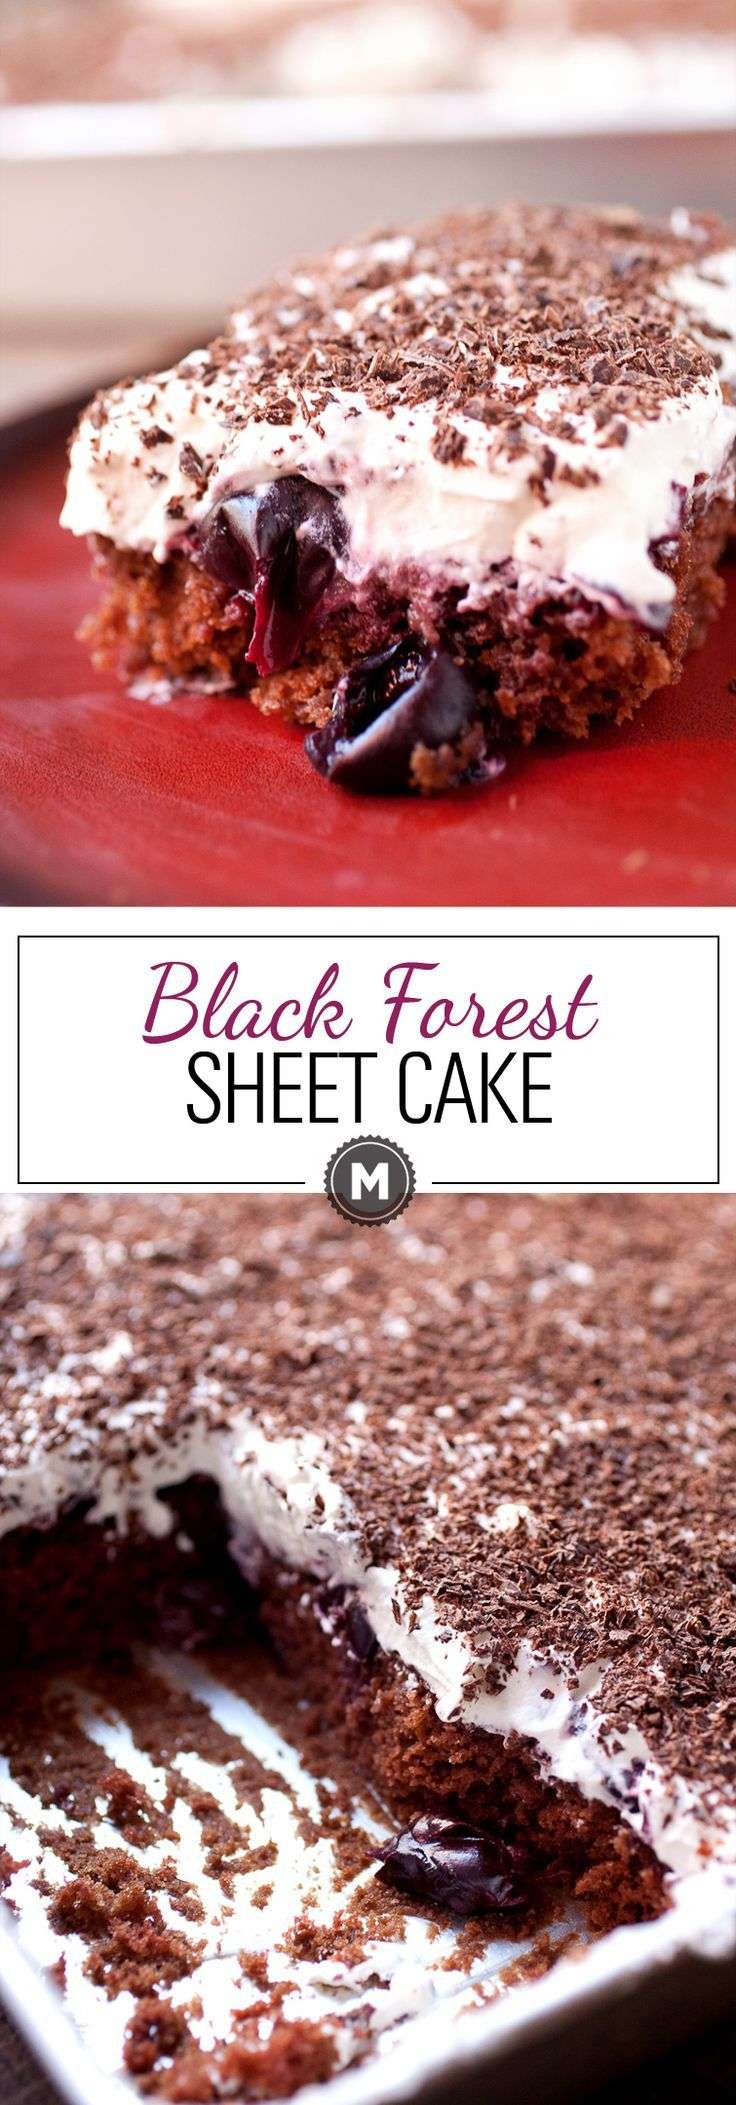 Black Forest Sheet Cake: Rich (but easy to make) chocolate sheet cake topped with loads of sweet cherries, whipped cream, and shaved chocolate. The nice thing about sheet cake is you can cut as big of a piece as you want! | macheesmo.com